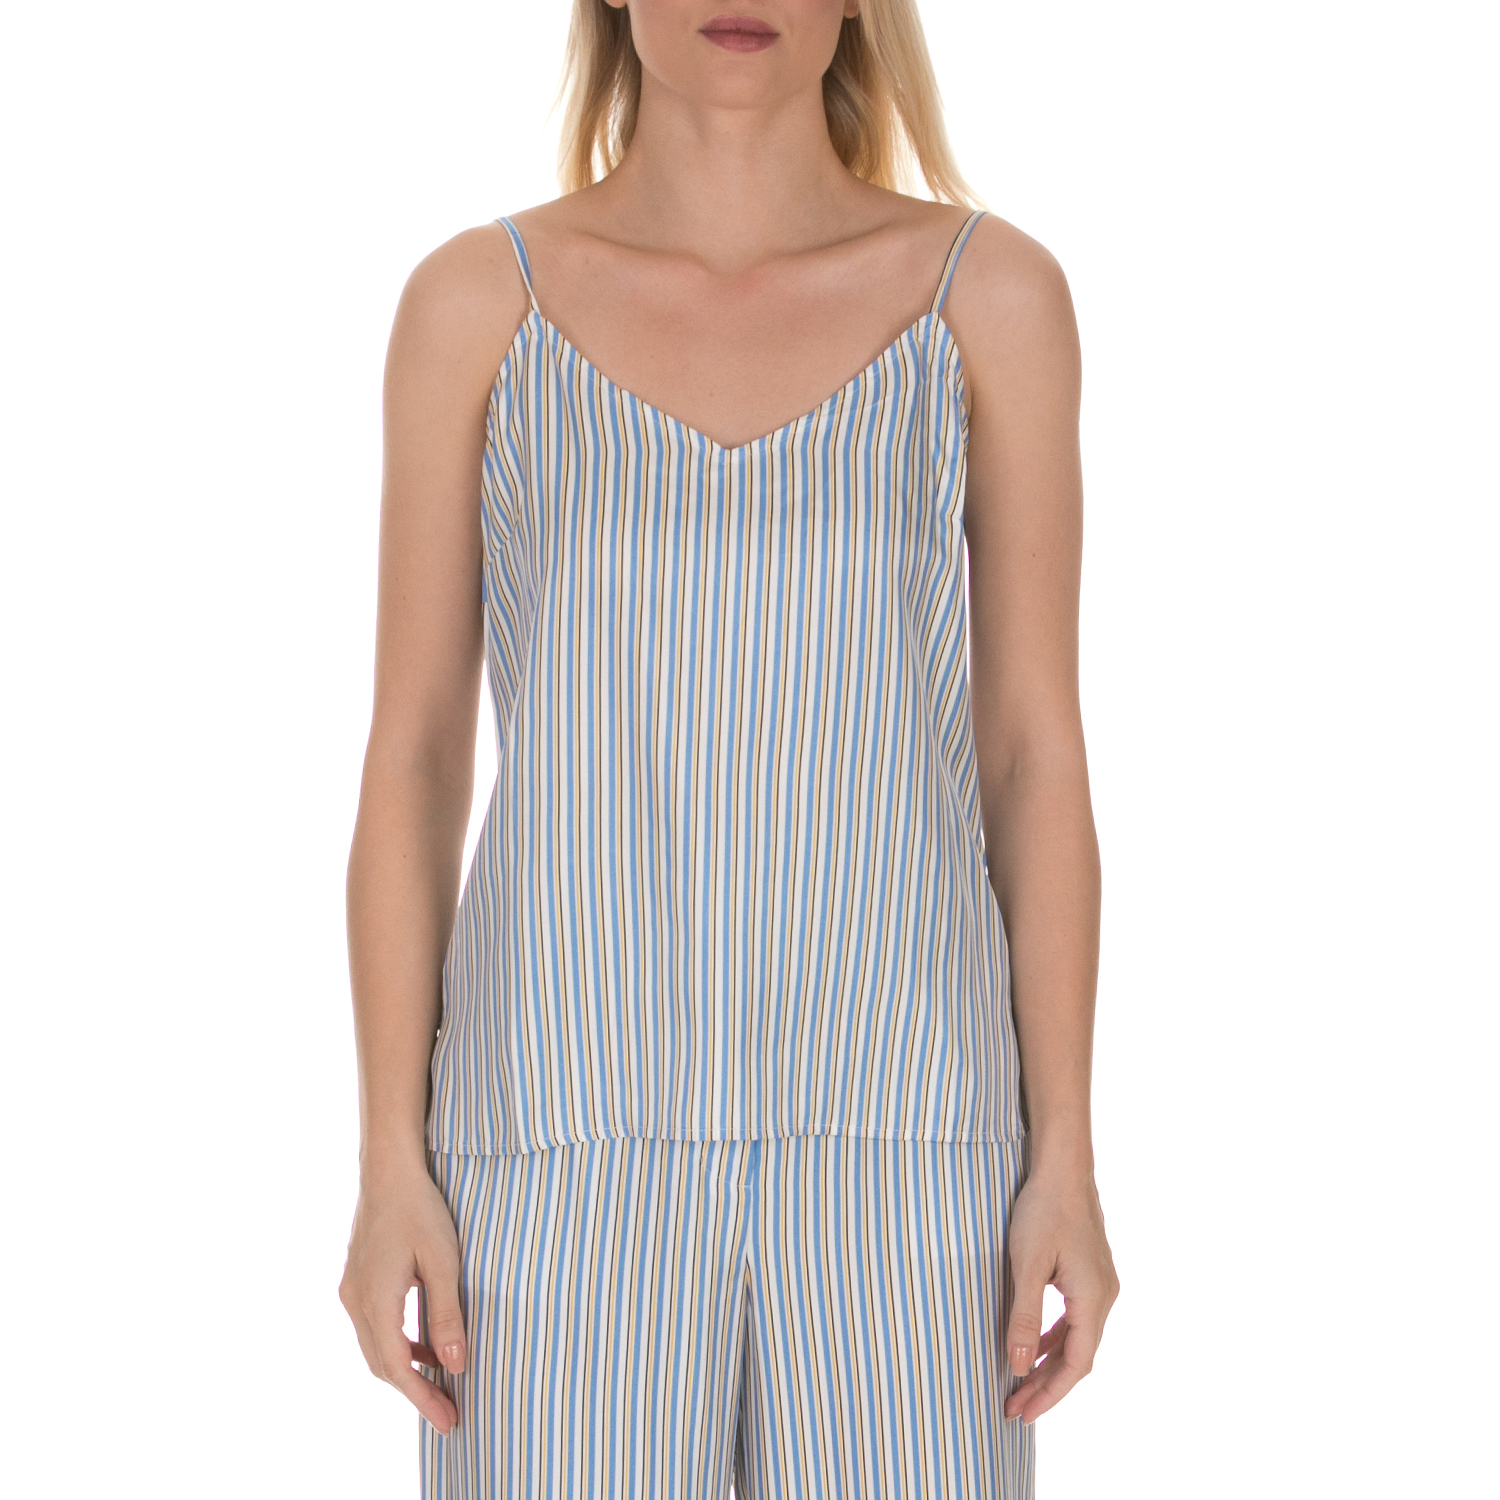 JUICY COUTURE - Γυναικείο τοπ JUICY COUTURE TICKING STRIPE CAMI ριγέ μπλε κίτρινο